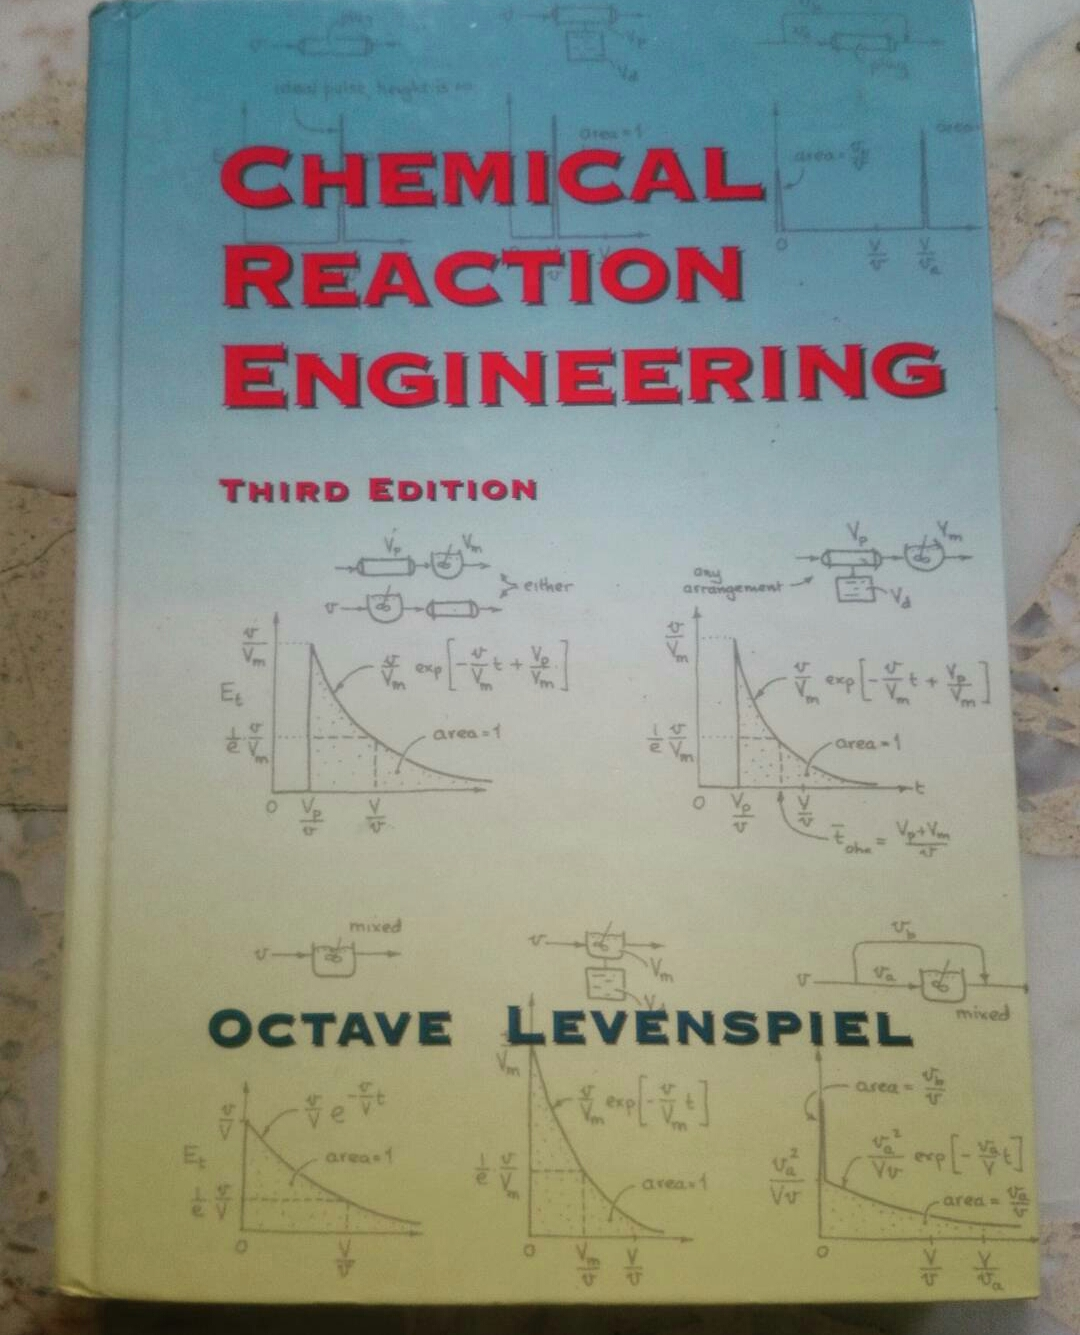 Chemical Reaction Engineering - 3rd Edition, Textbooks on Carousell